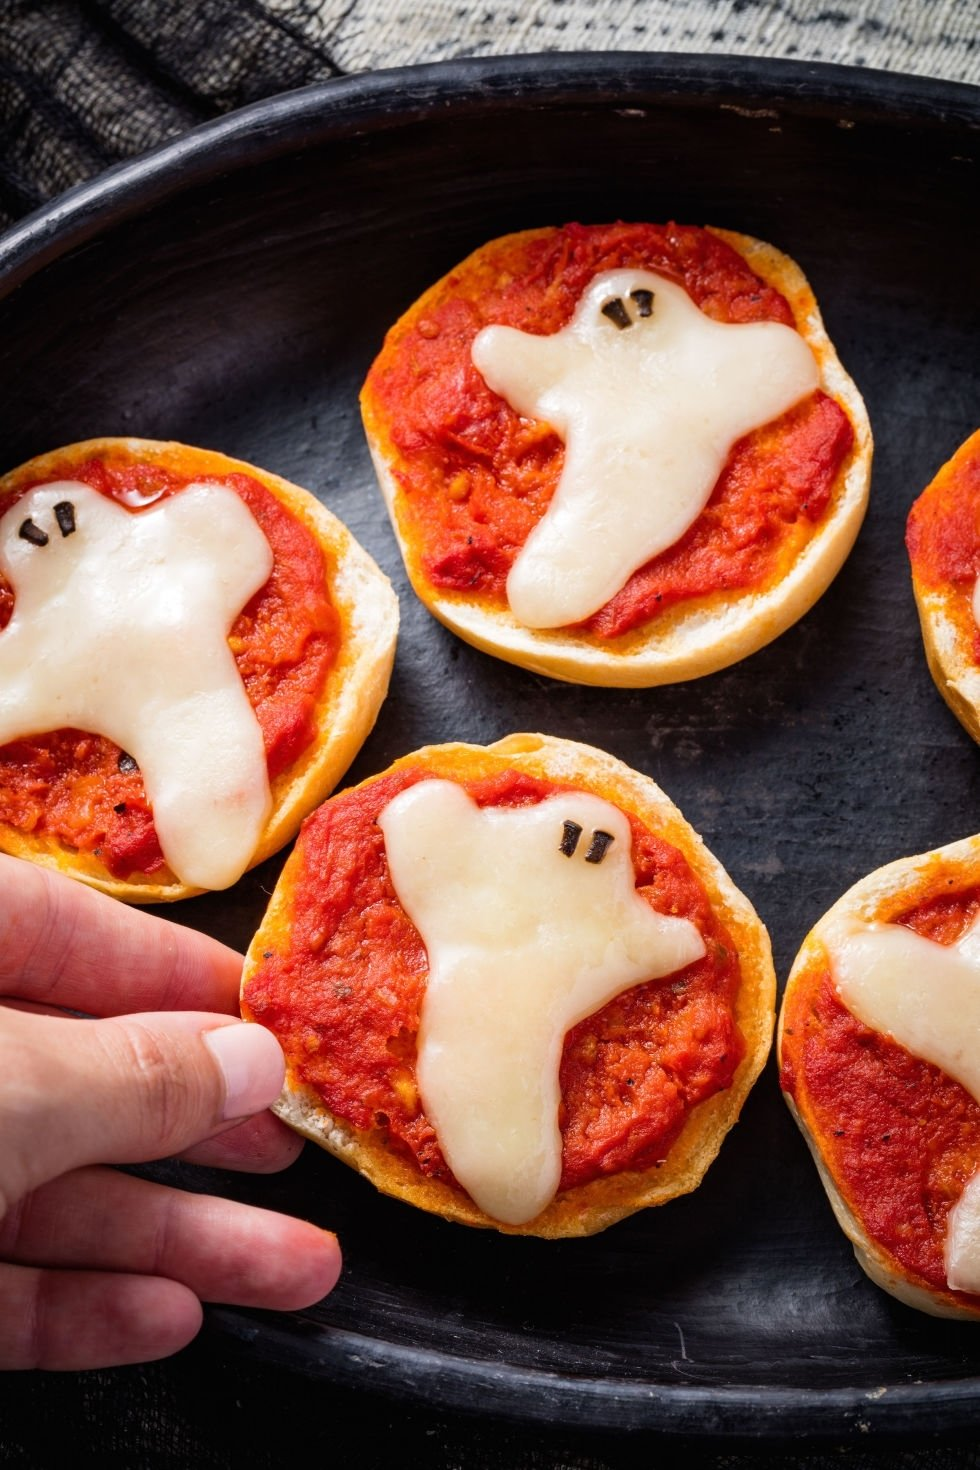 10 Stylish Halloween Food Ideas For Kids Party halloween food ideas for kids mforum 8 2020